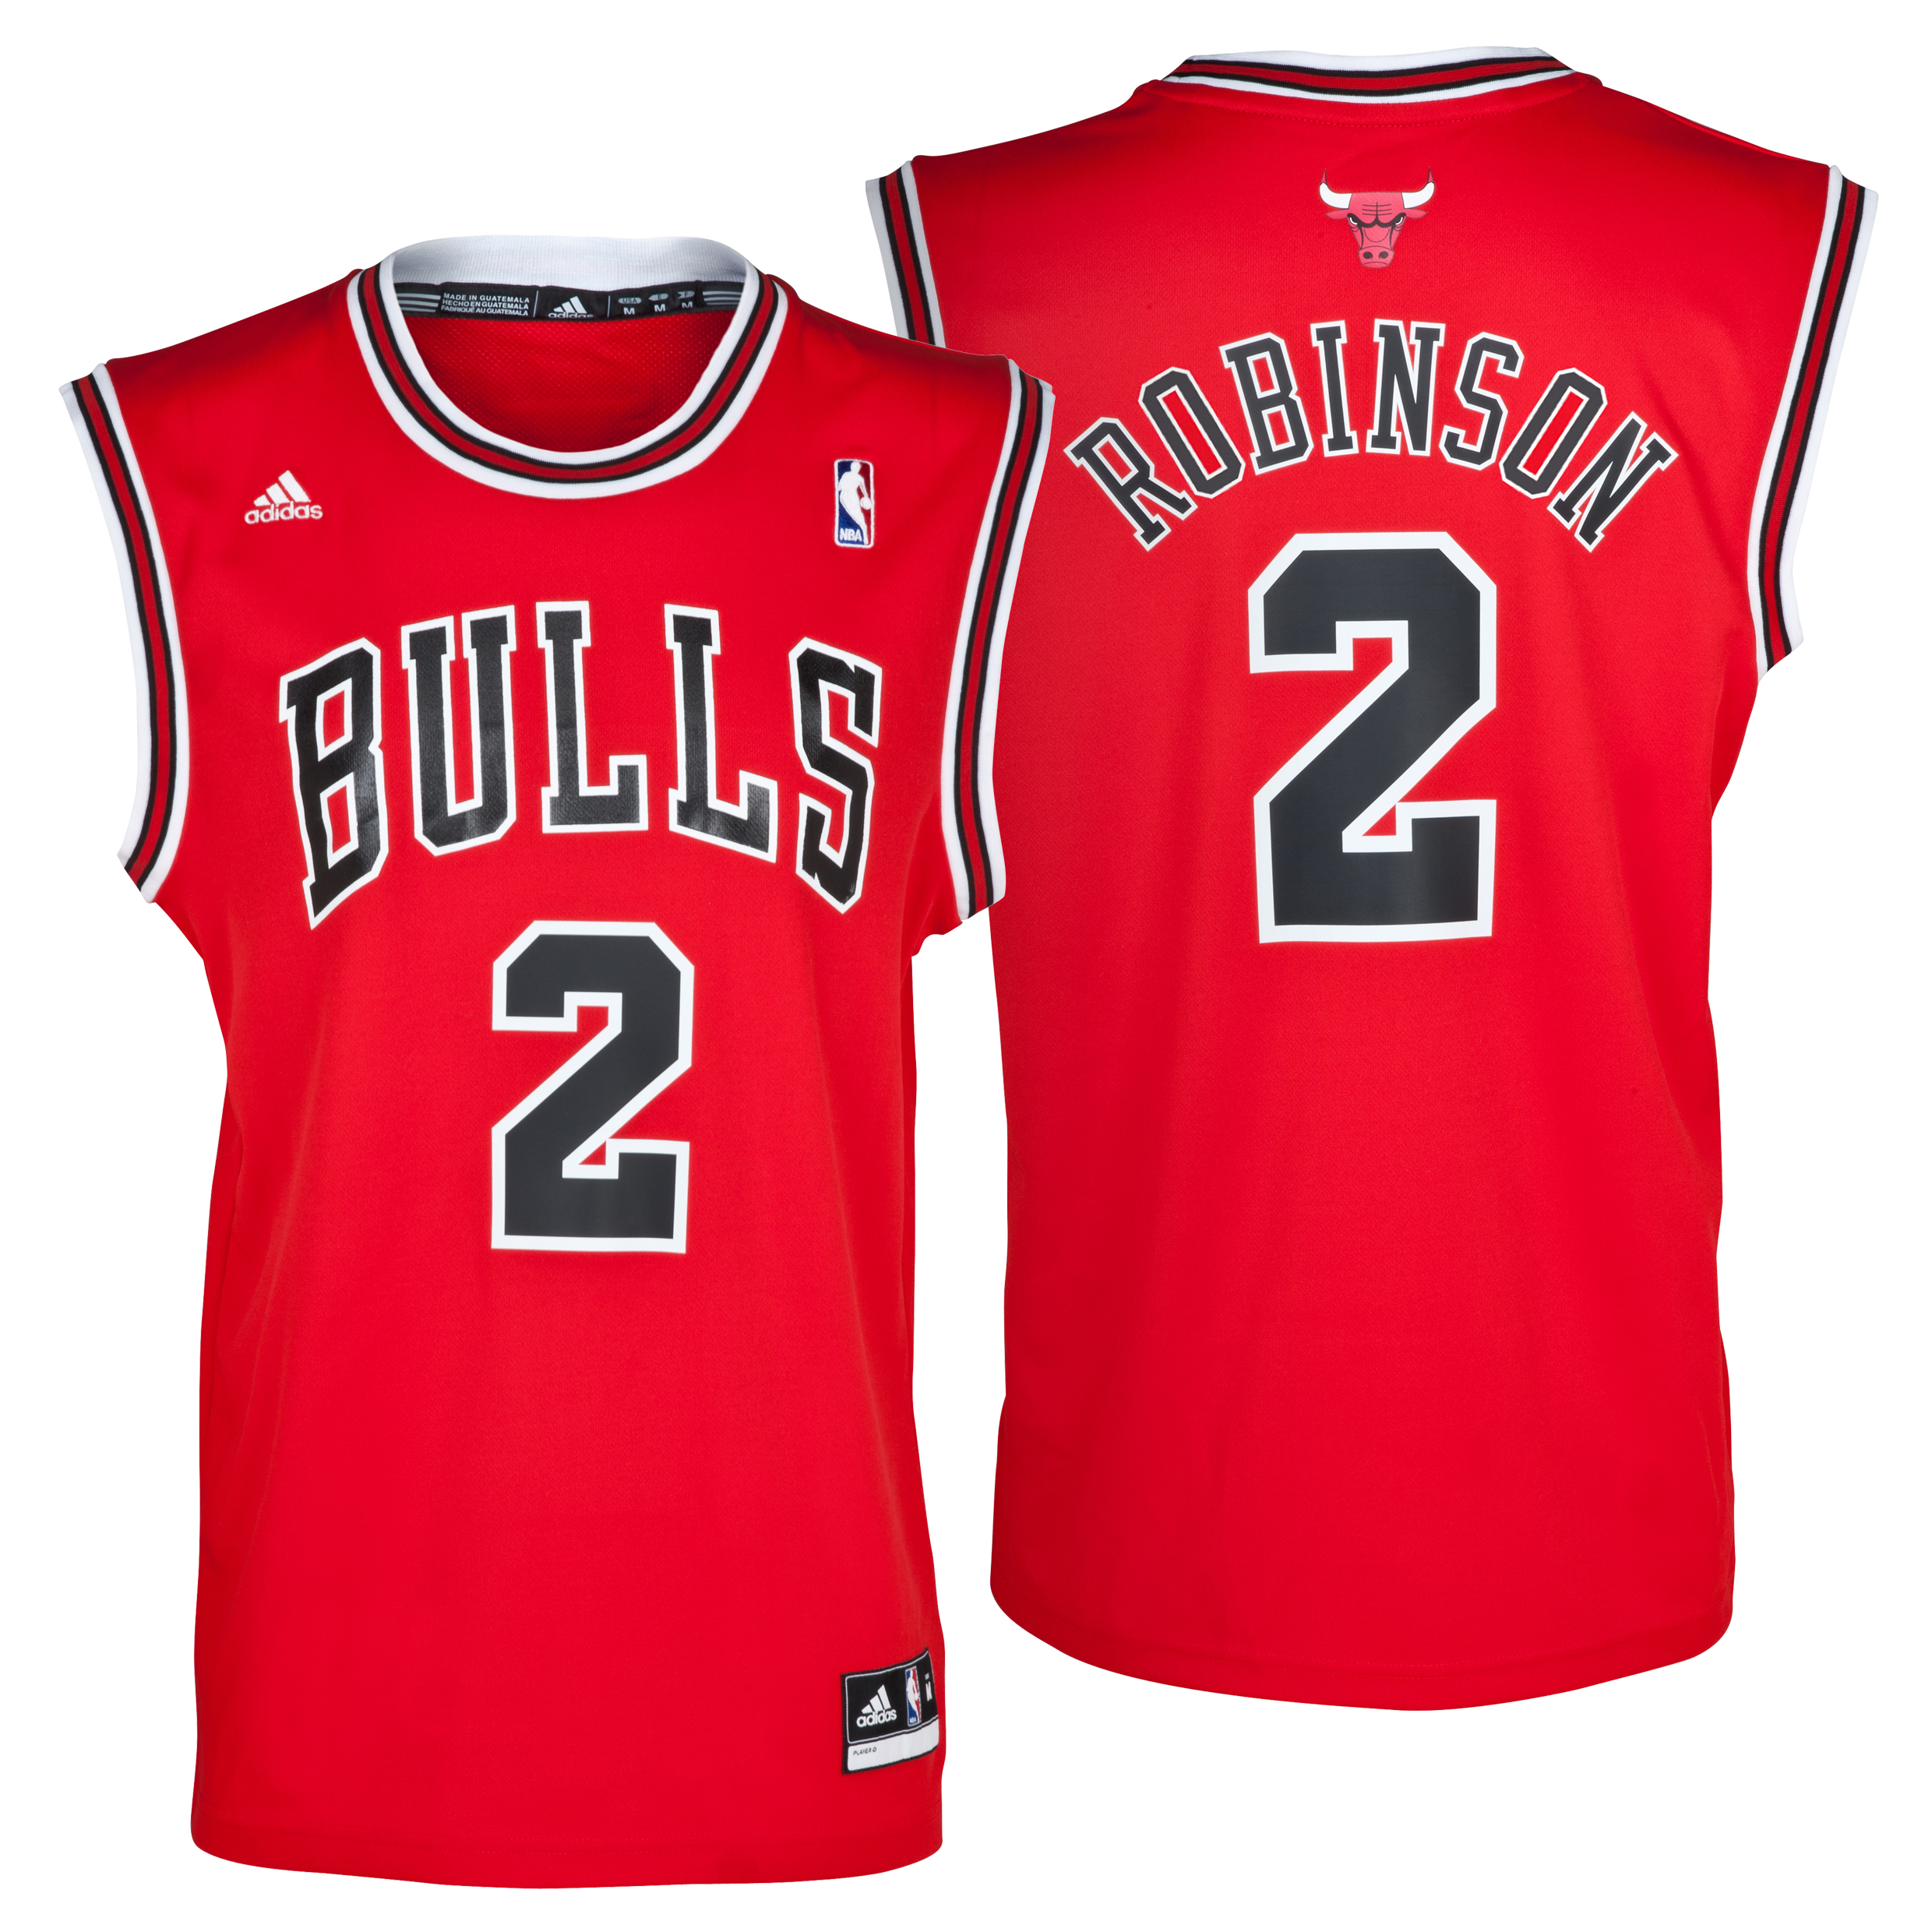 Chicago Bulls Road Replica Jersey – Nate Robinson – Mens